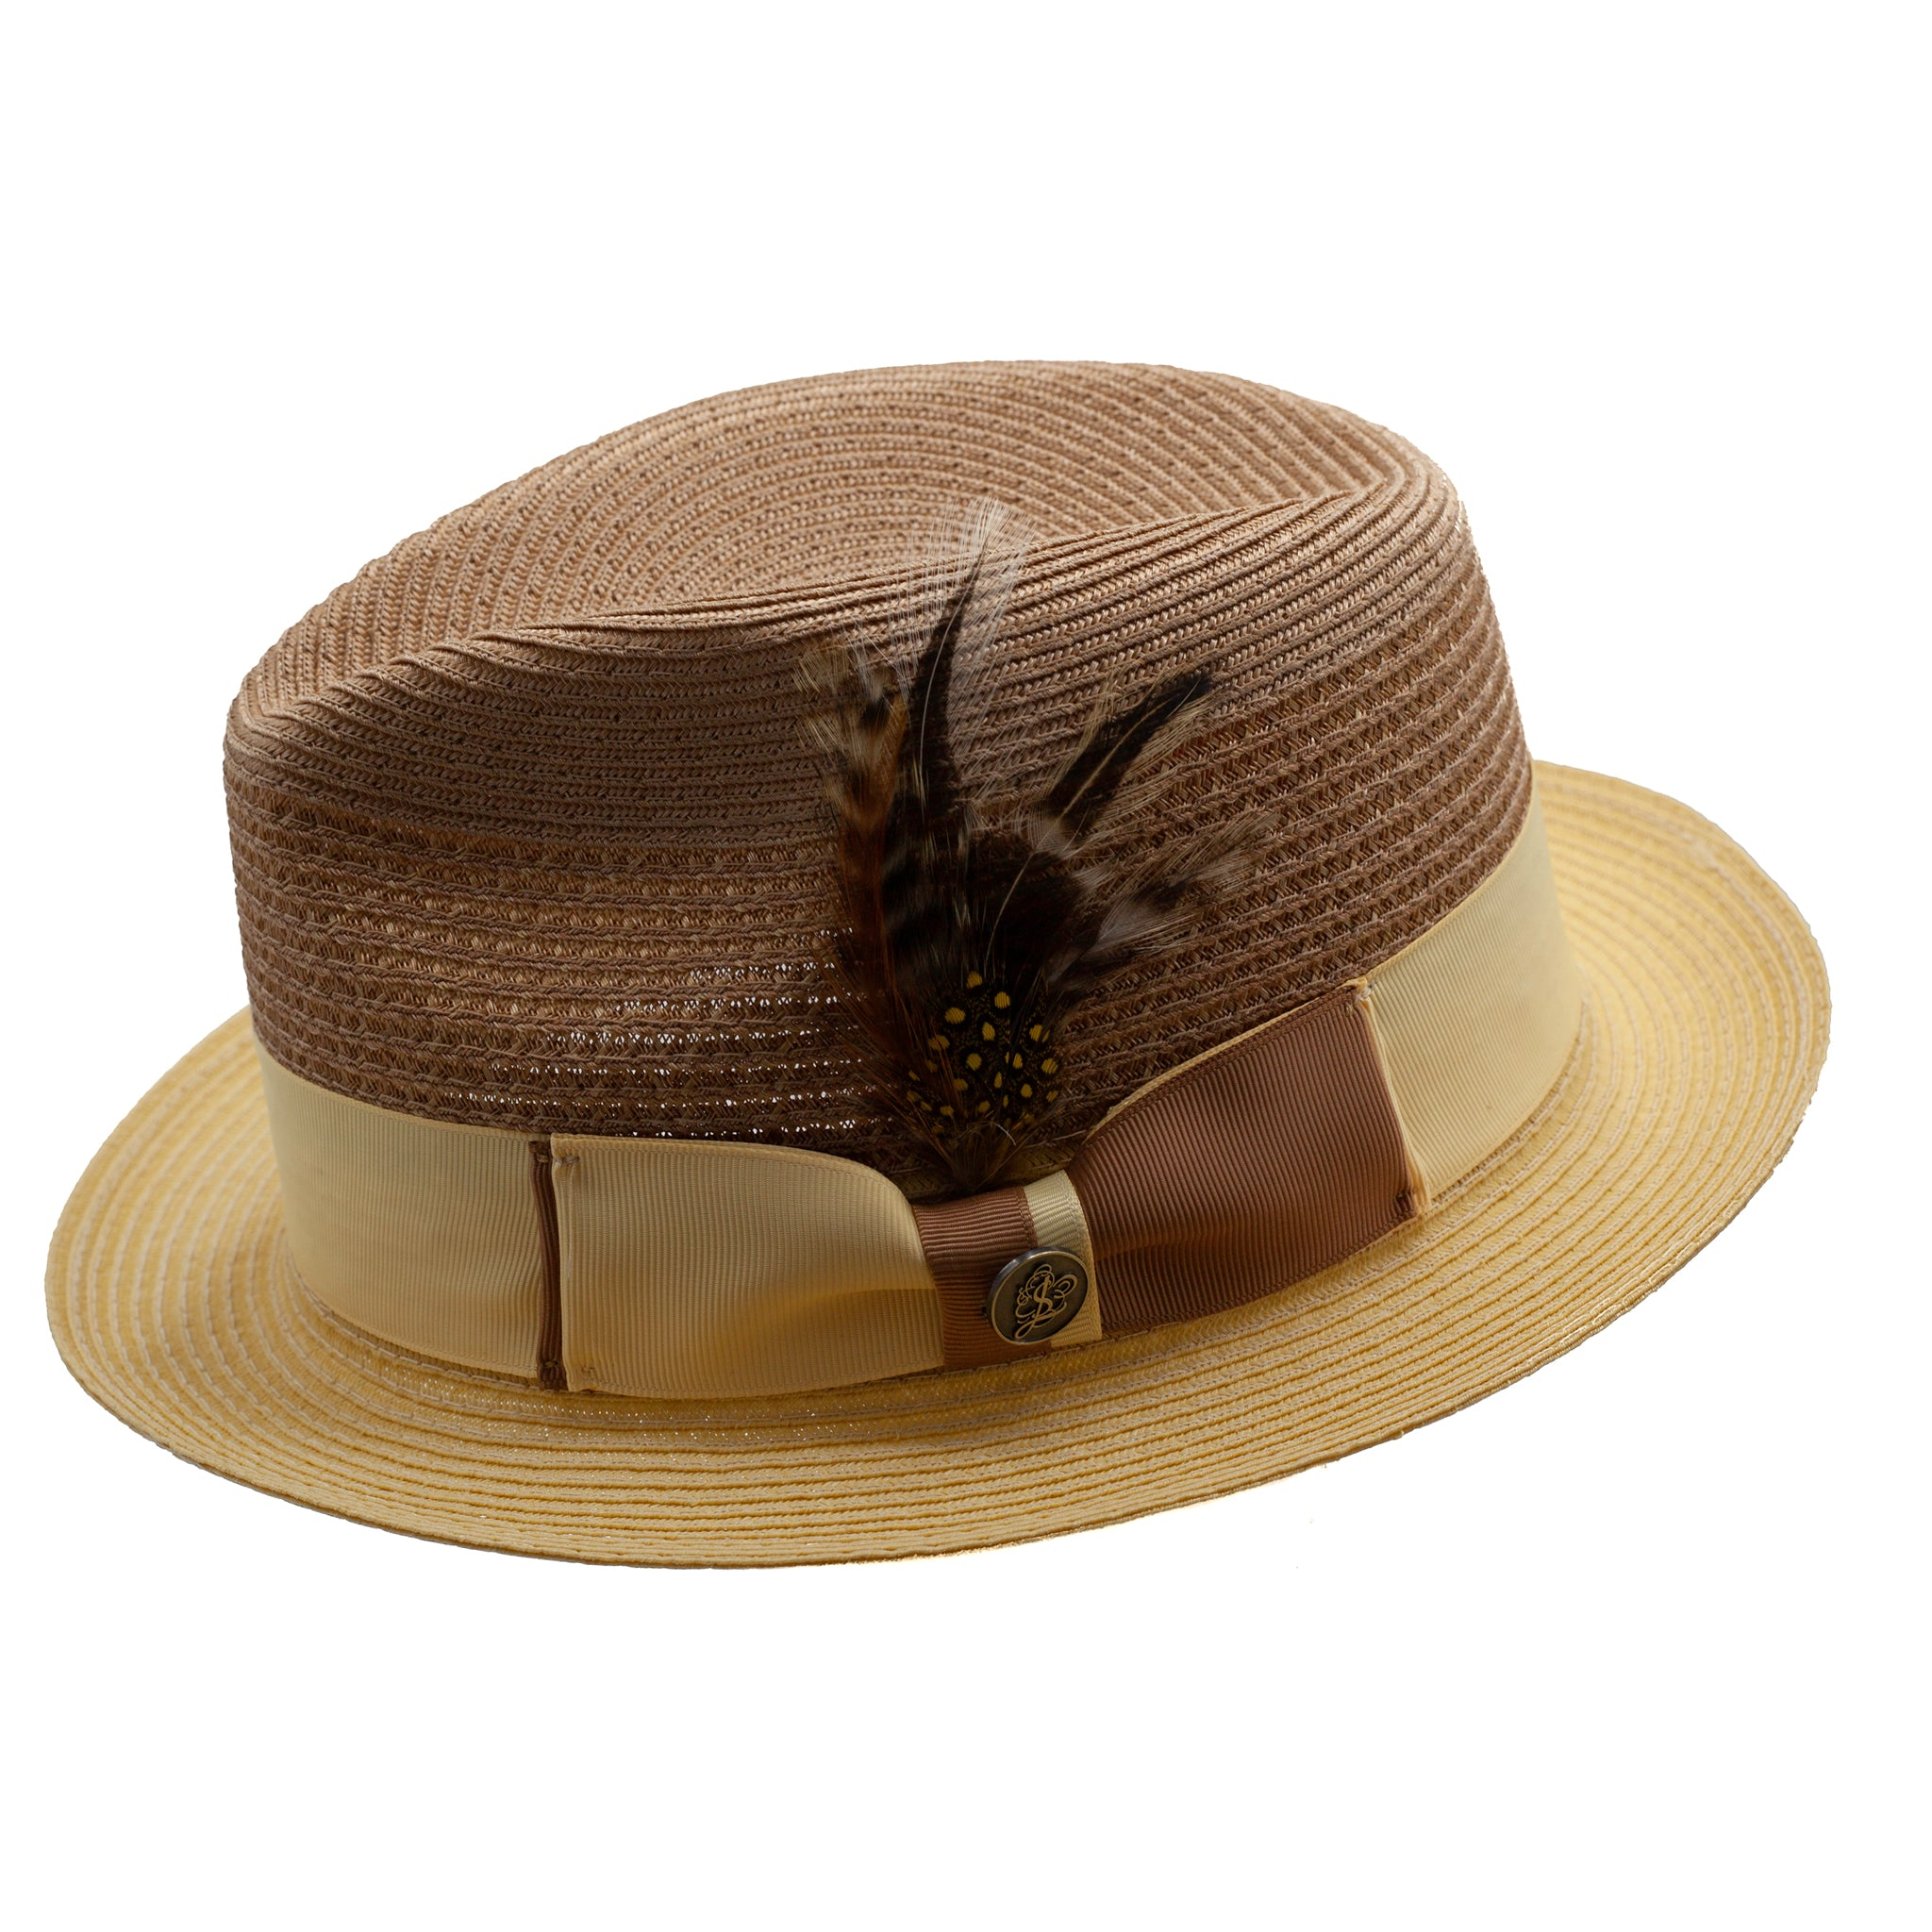 STACY ADAMS SPRING HAT / TAN